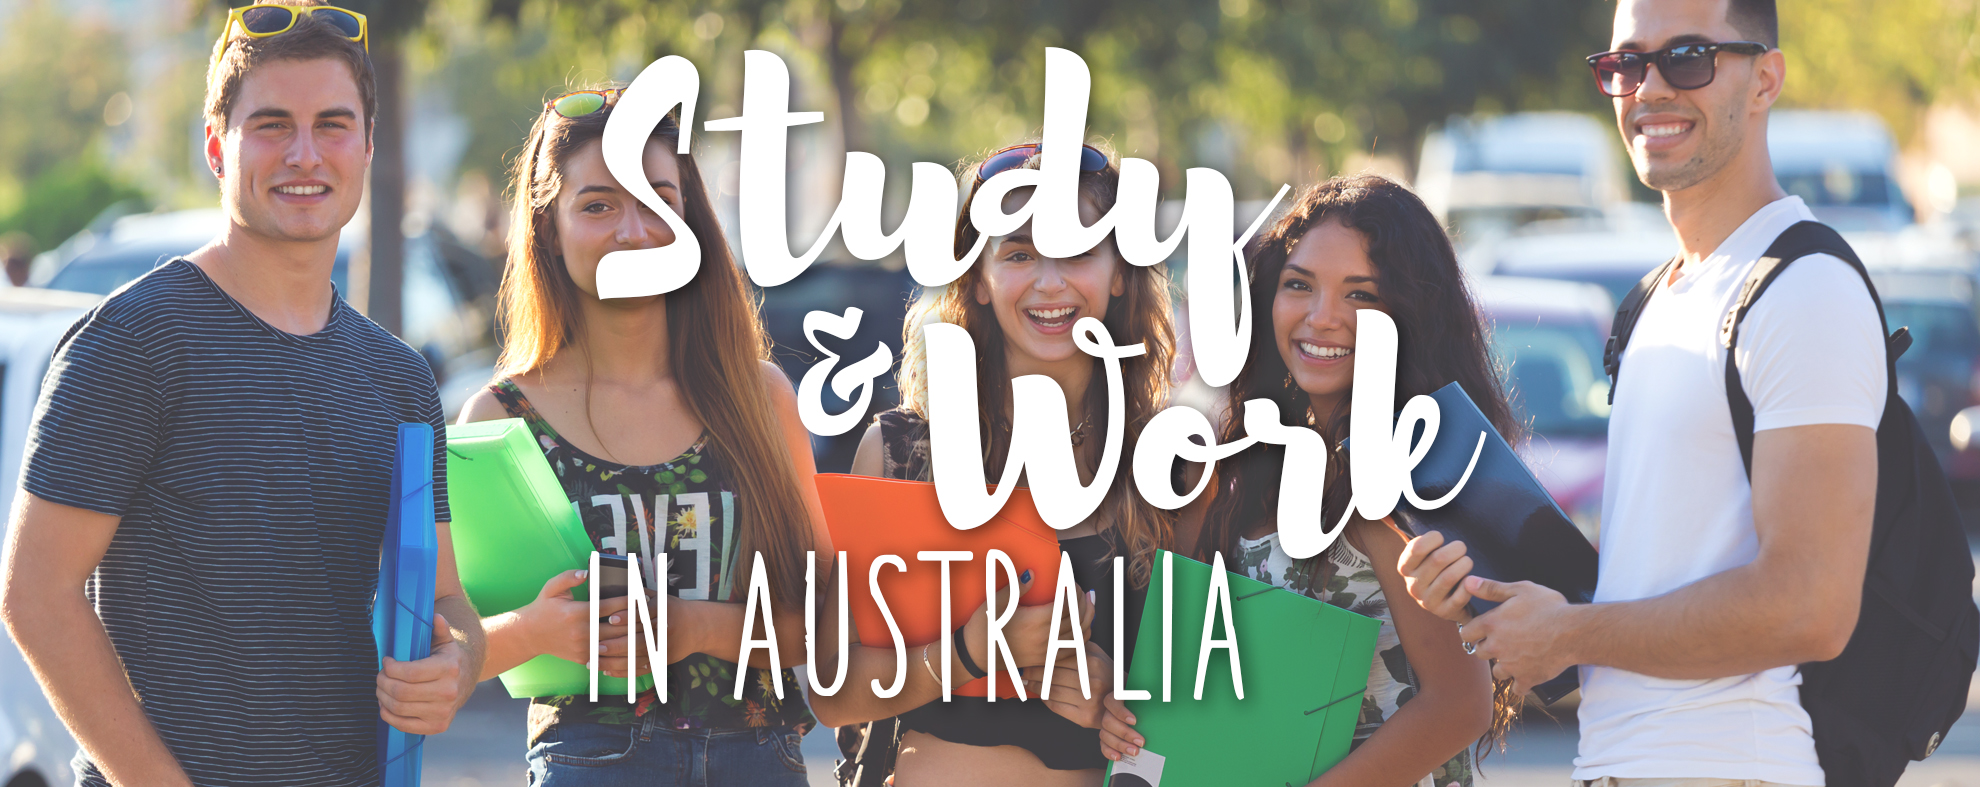 Go Study Brisbane Work And Study In Australia Let 39s Go Study Australia